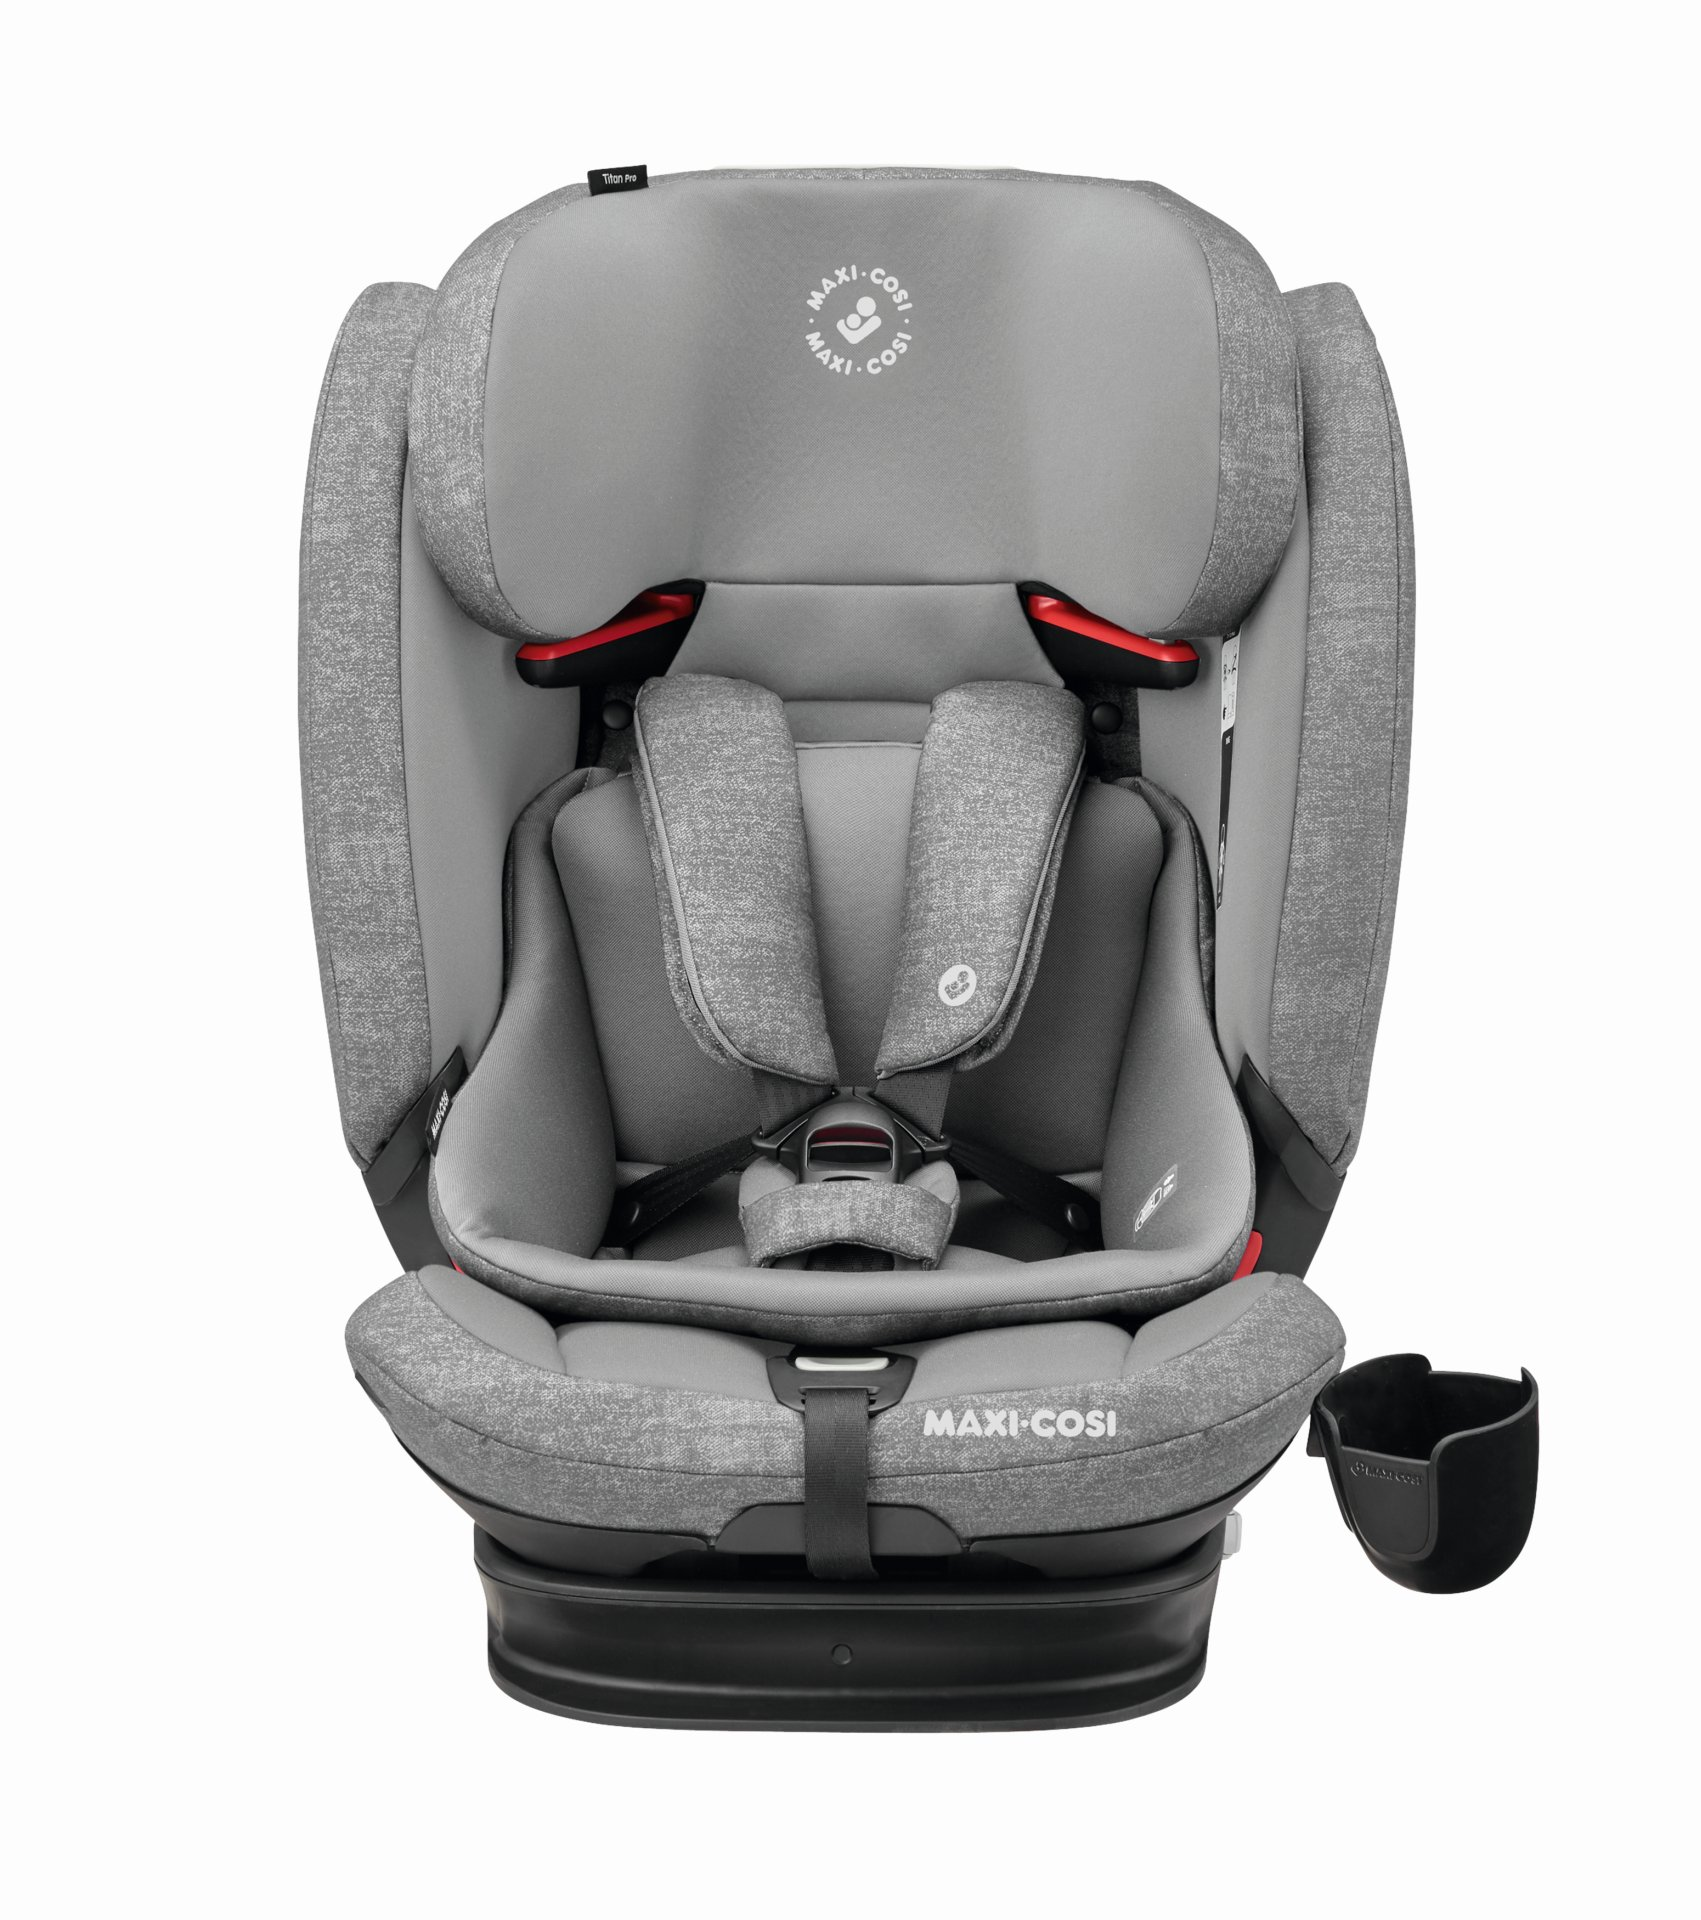 maxi cosi child car seat titan pro 2019 nomad grey buy at kidsroom car seats. Black Bedroom Furniture Sets. Home Design Ideas